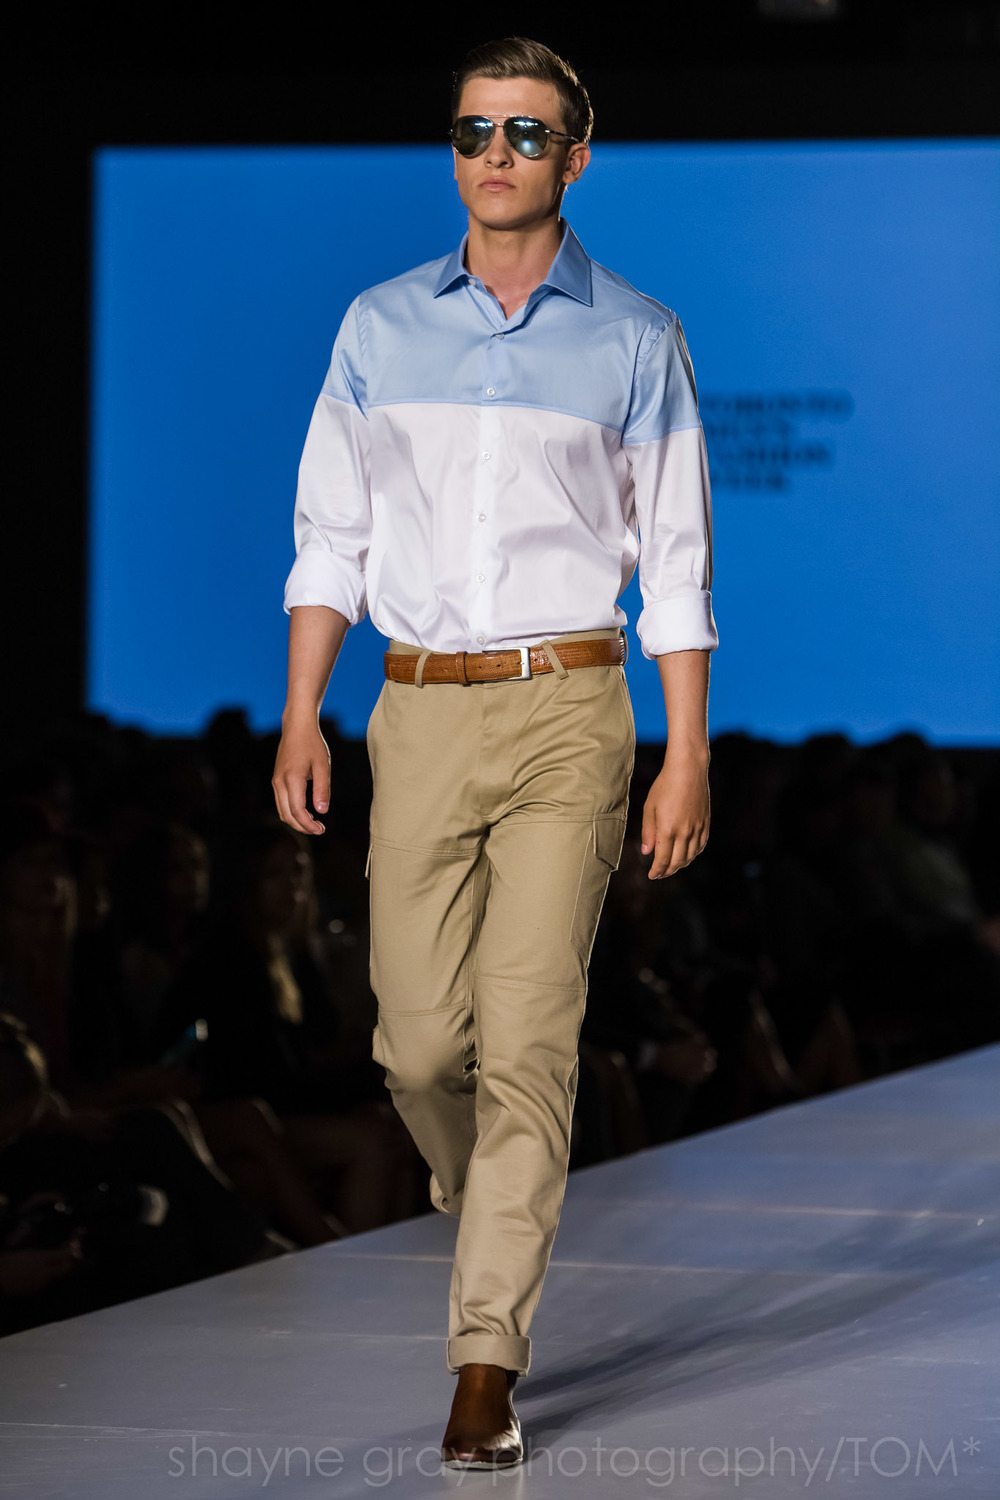 Shayne-Gray-Toronto-men's-fashion_week-TOM-christopher-bates-7347.jpg